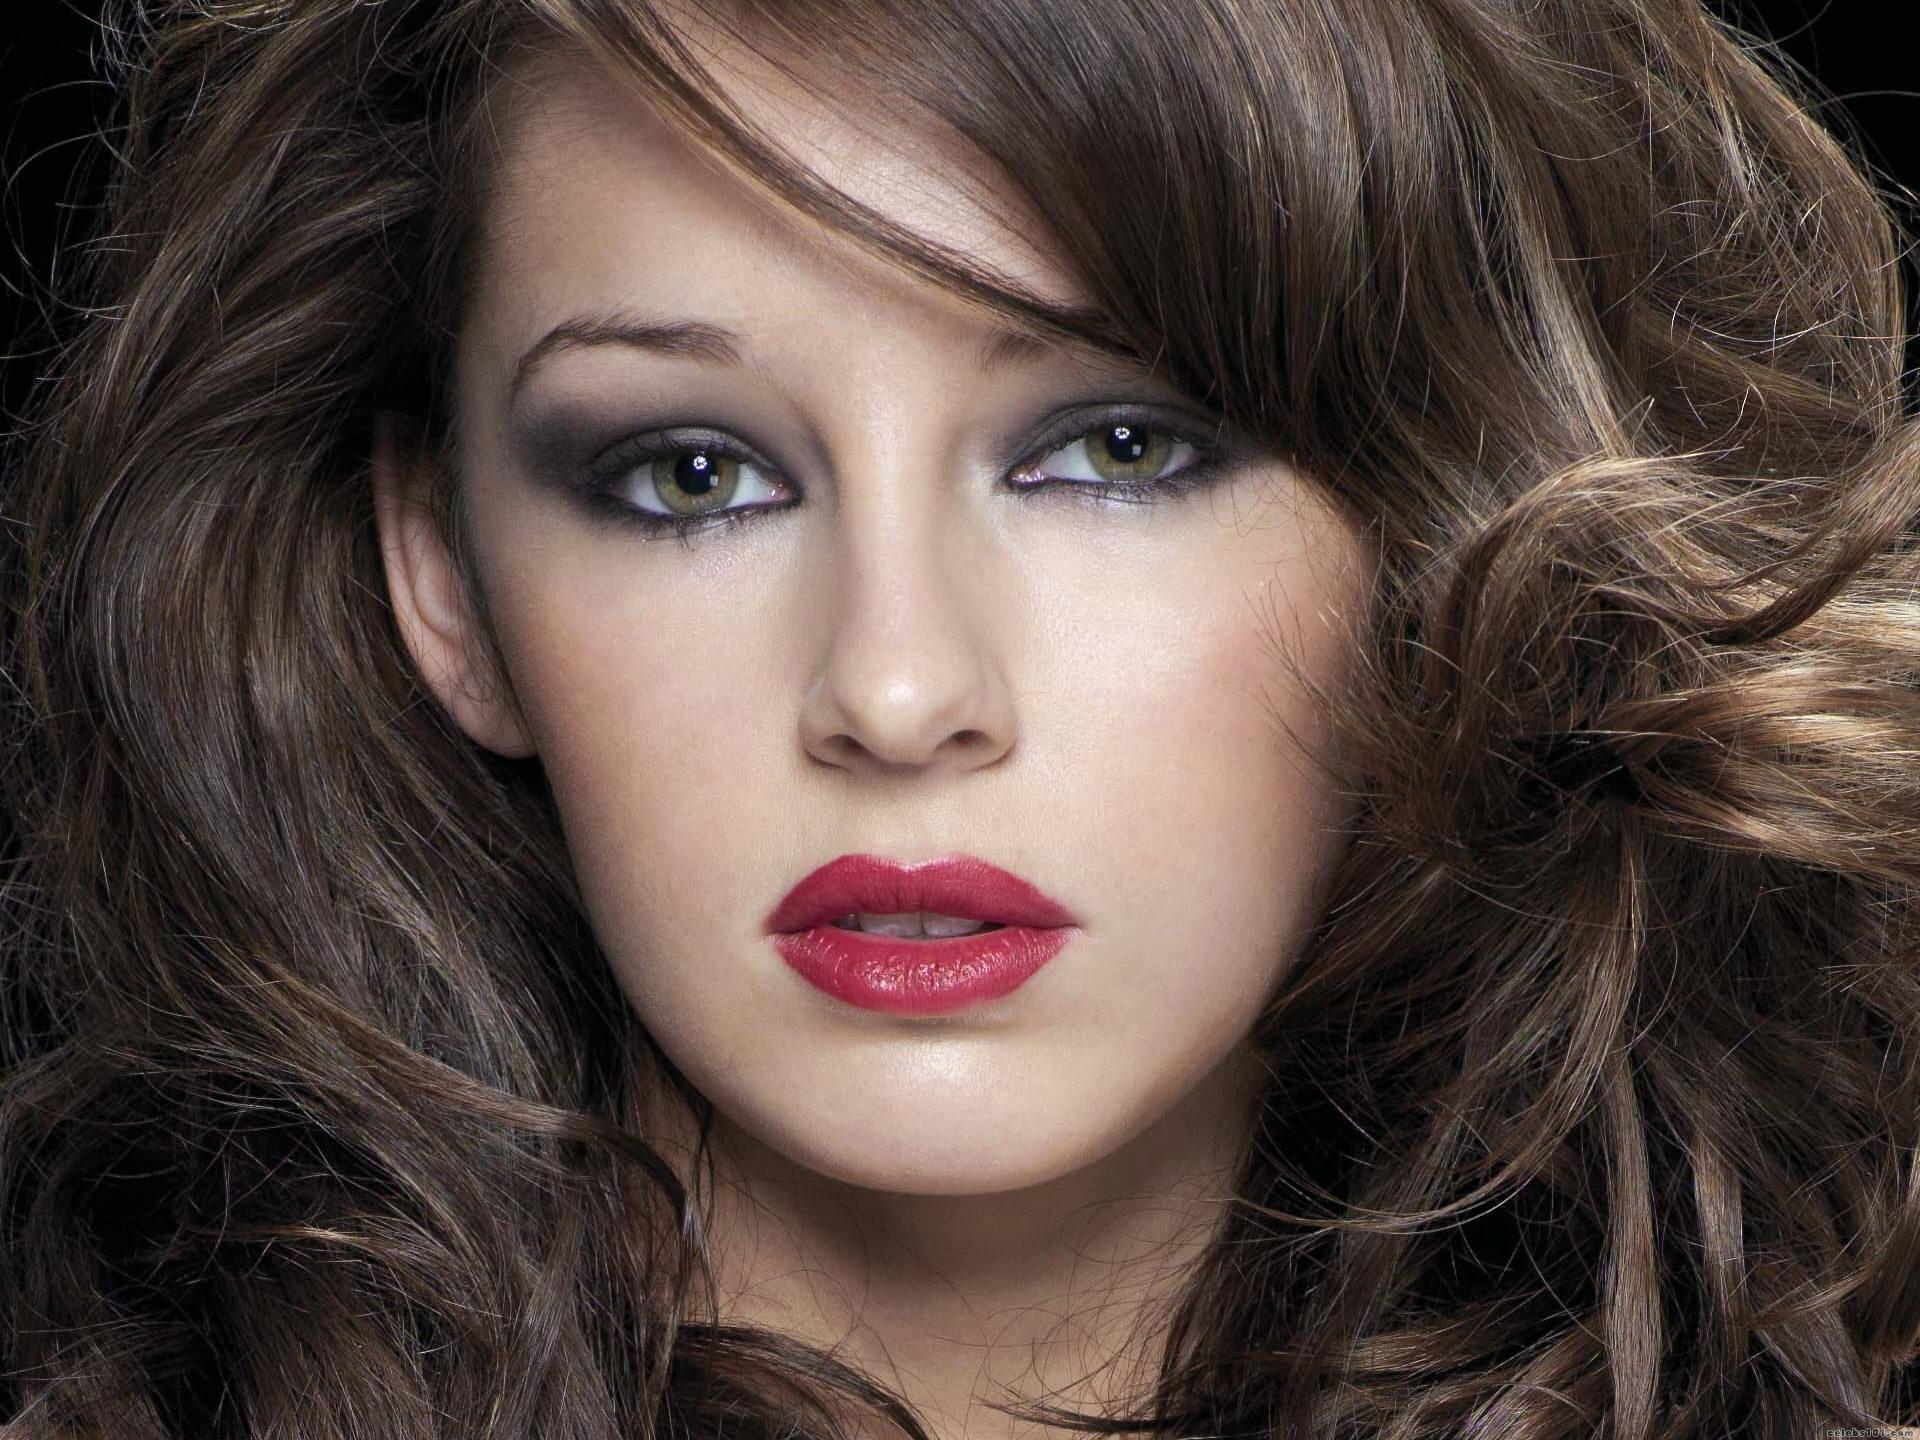 keeley hazell downloads backgrounds - photo #9